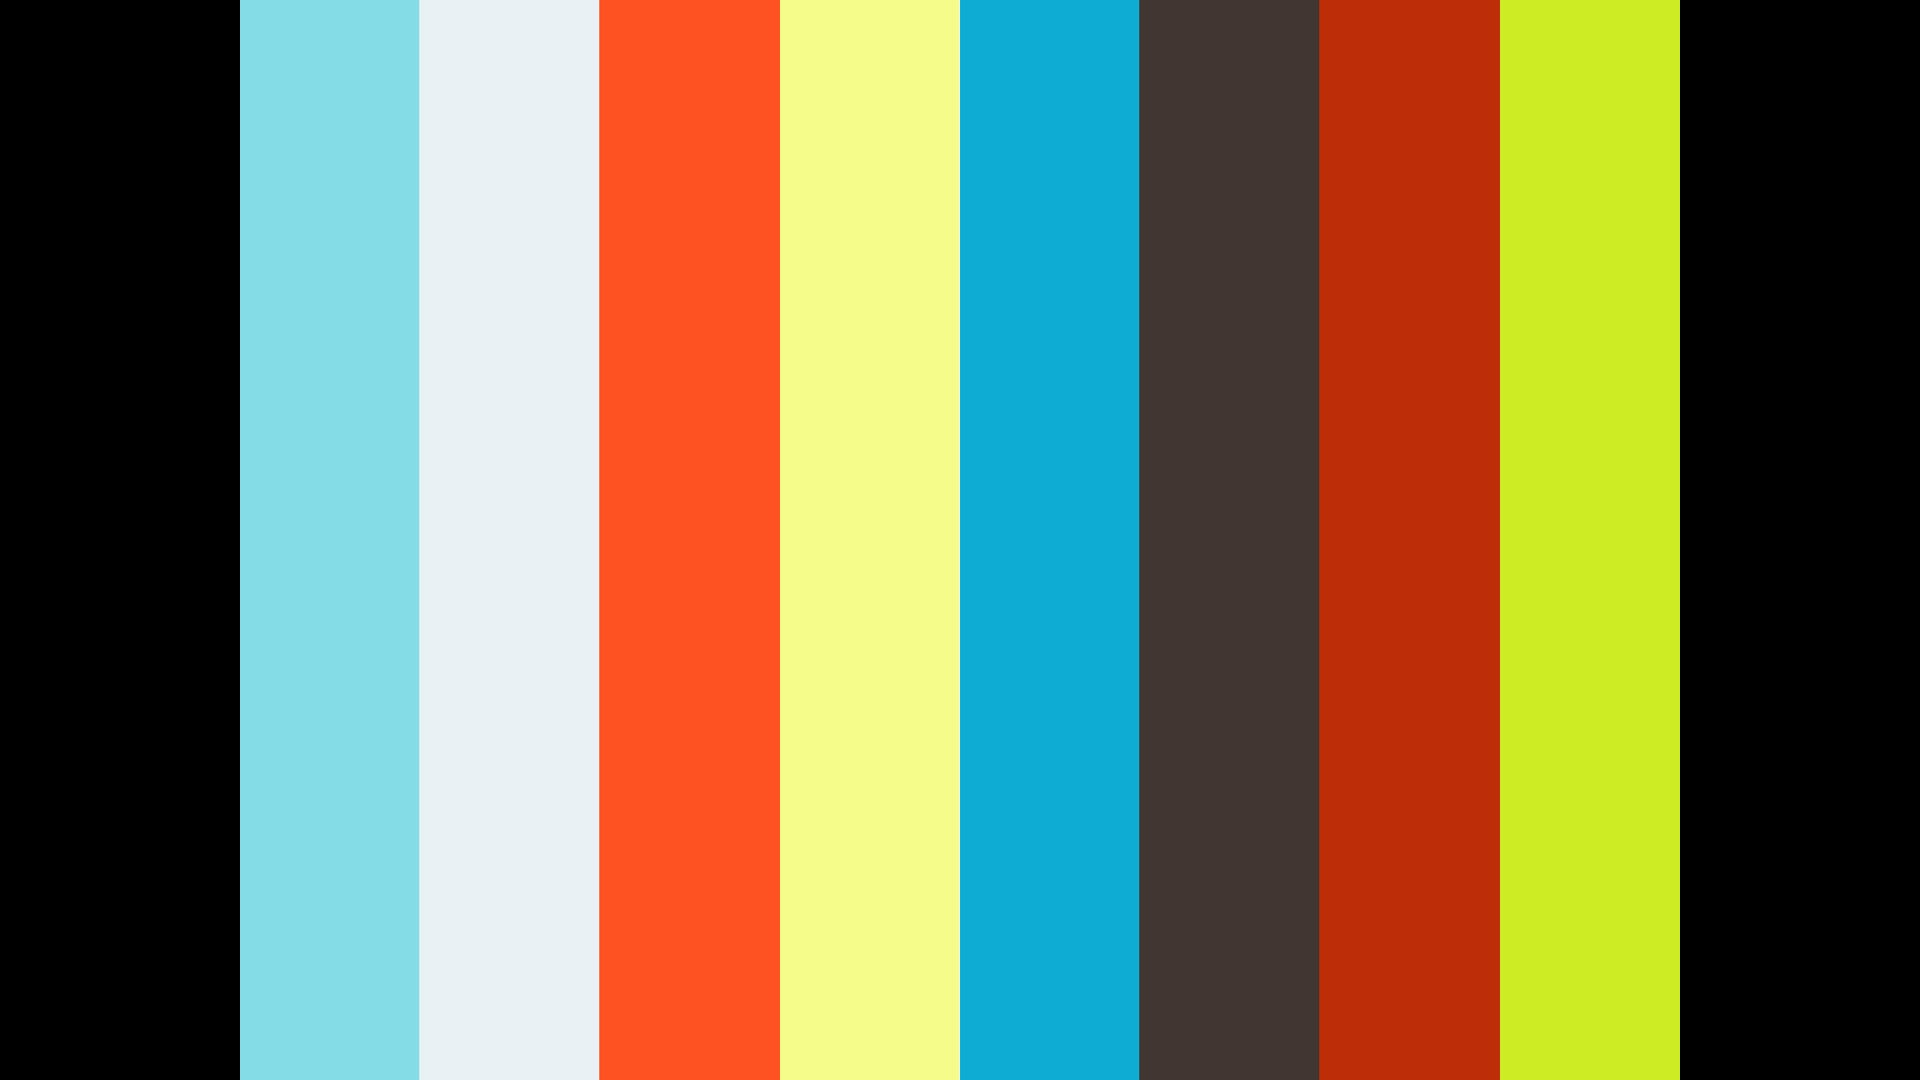 Elements -Frogger to Squat - Explanation